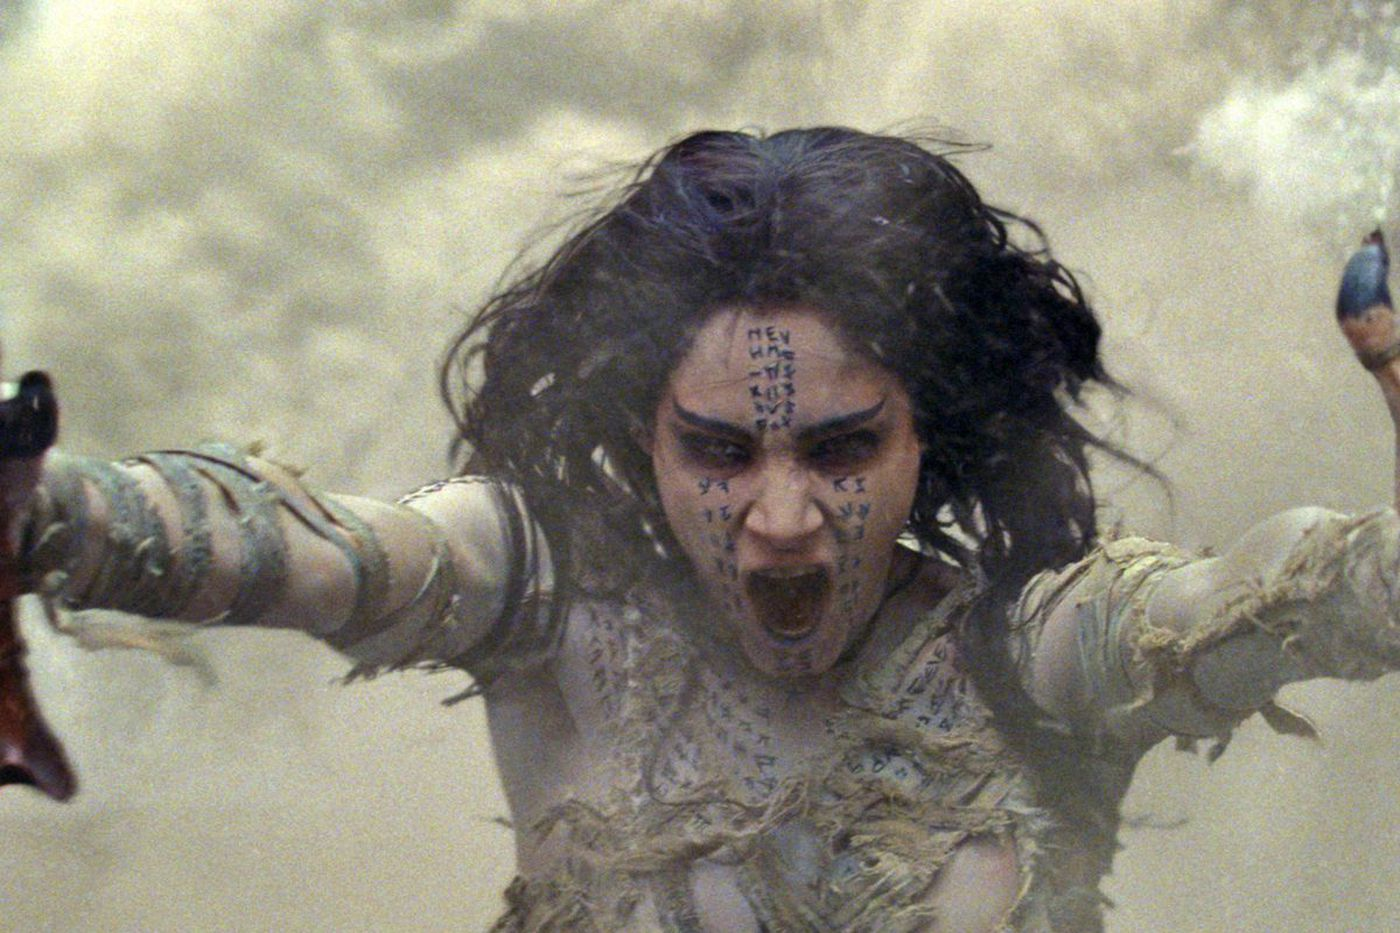 Tom Cruise's 'The Mummy': Fun before it unravels